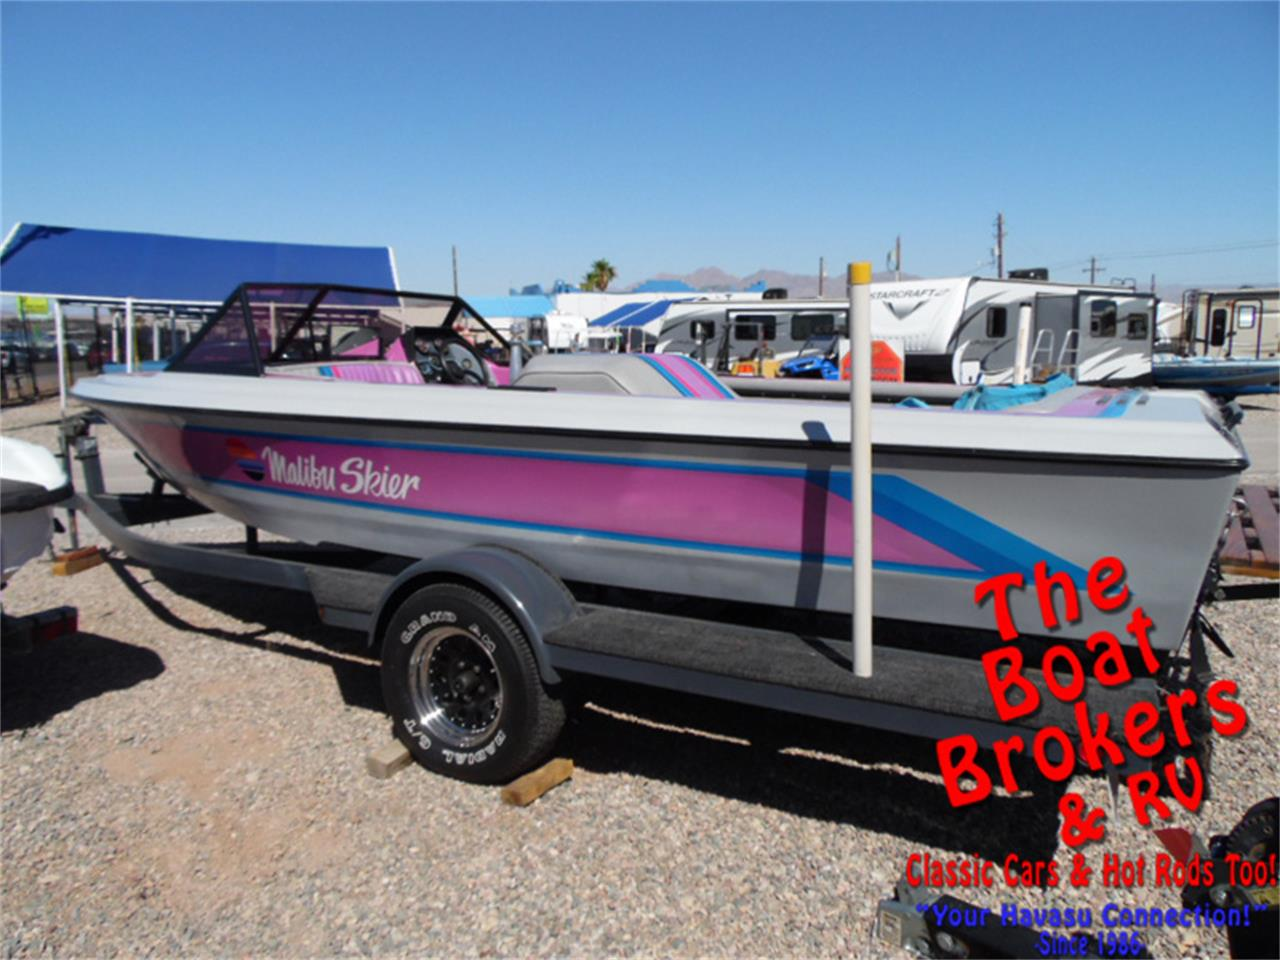 1988 Miscellaneous Boat for sale in Lake Havasu, AZ – photo 3